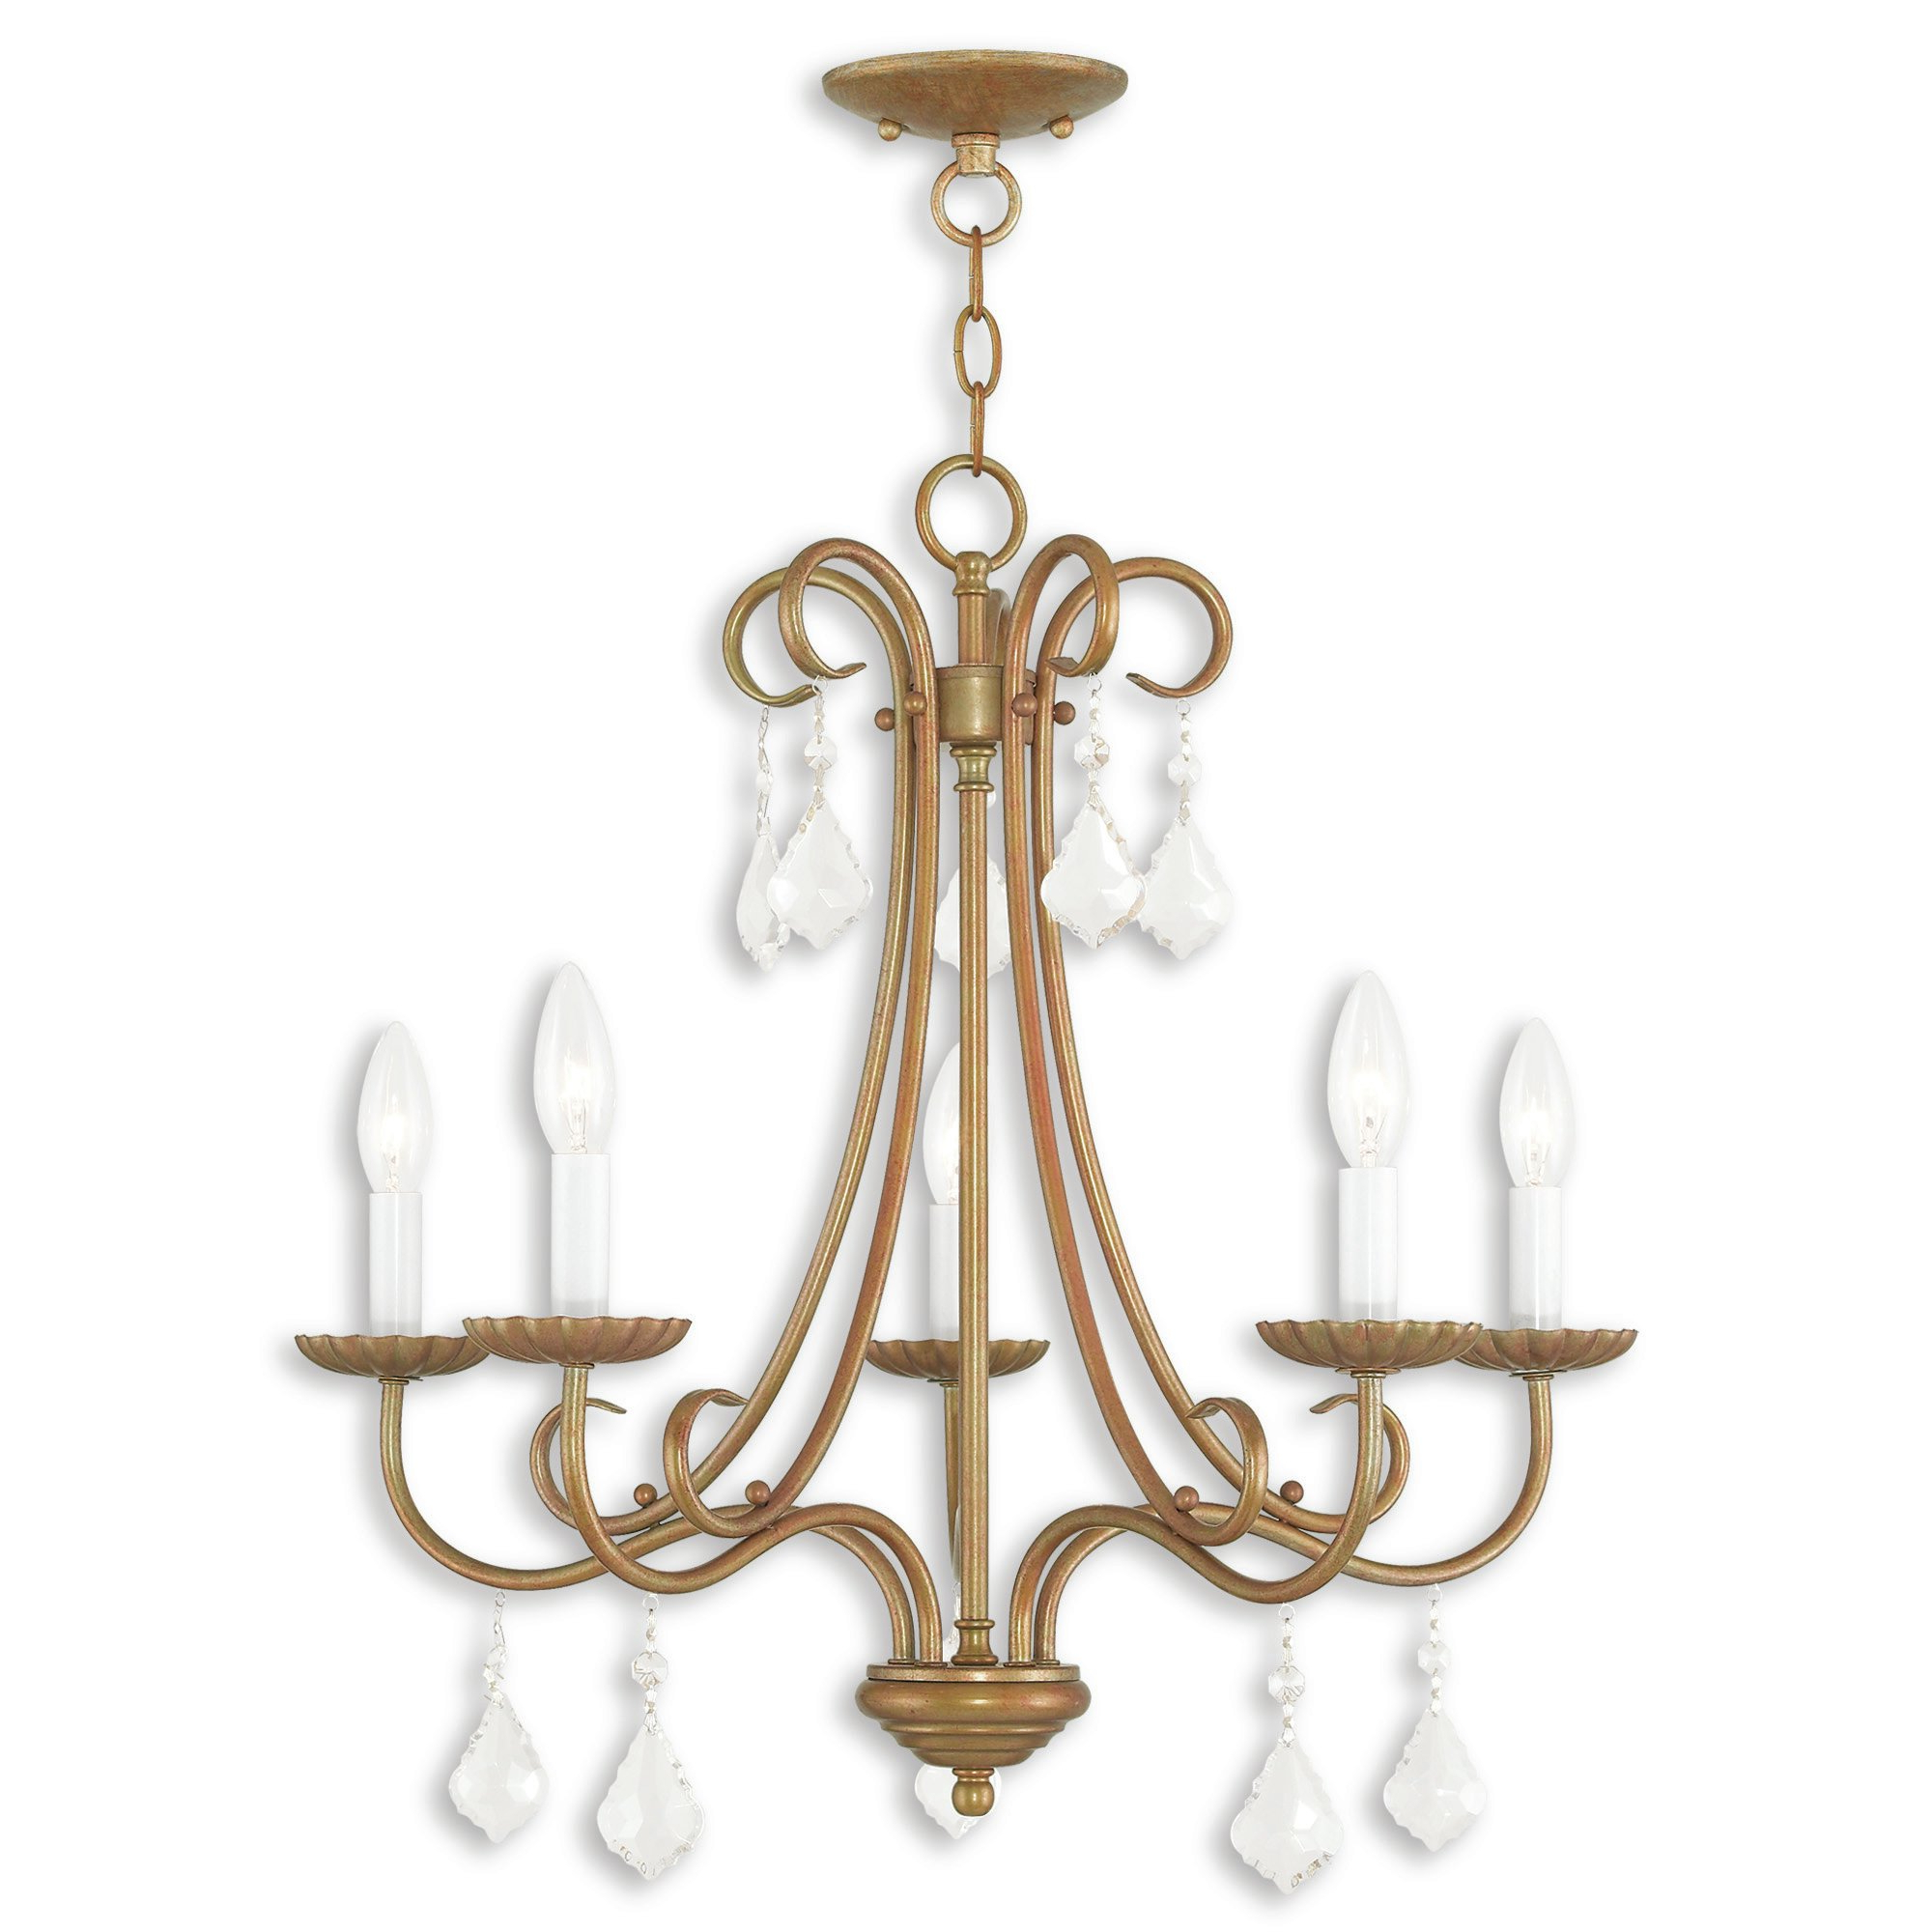 2019 Devan 5 Light Candle Style Chandelier Within Blanchette 5 Light Candle Style Chandeliers (Gallery 15 of 20)